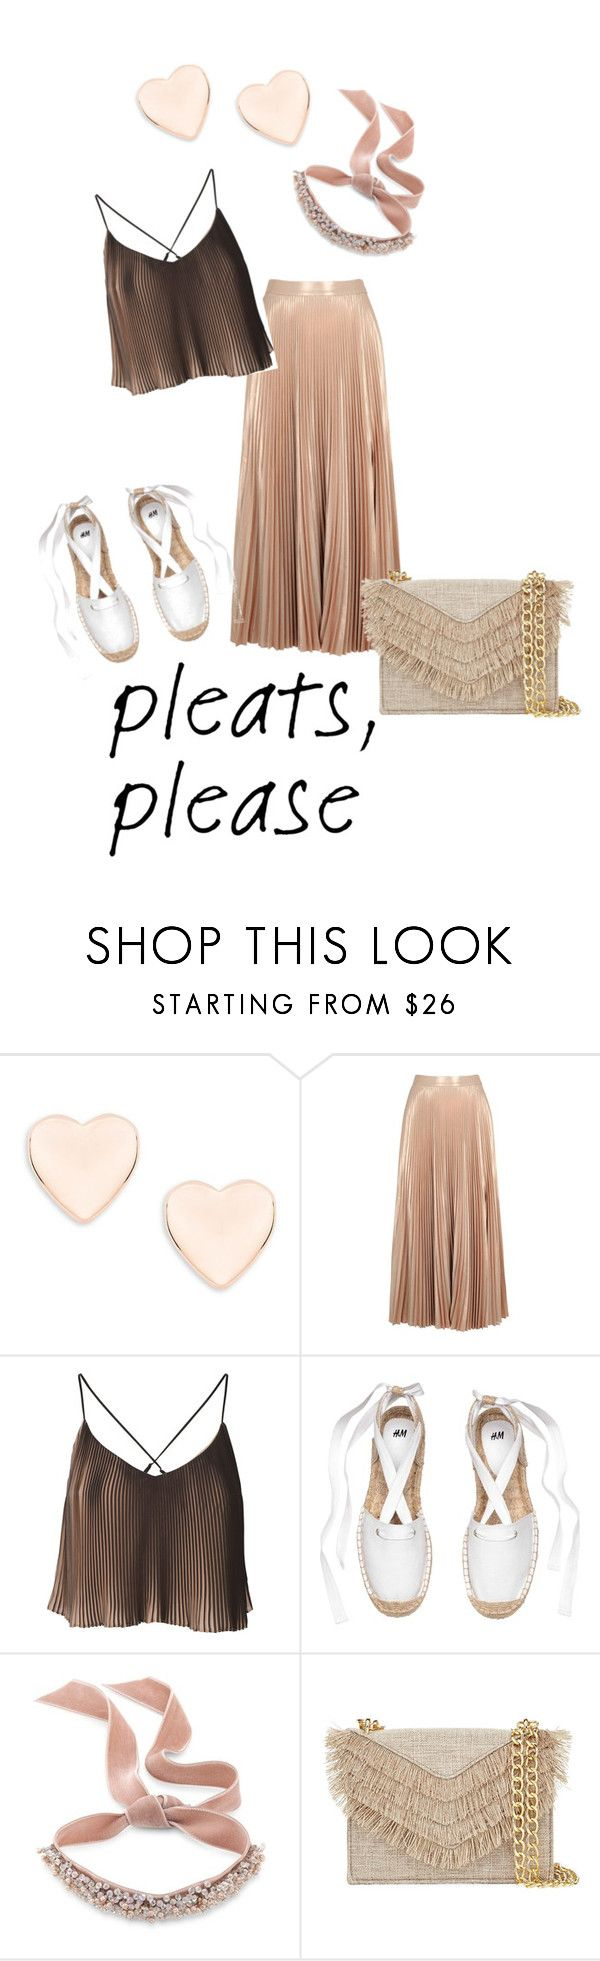 """""""pleats please"""" by beemdh on Polyvore featuring moda, Ted Baker, A.L.C., Fallon y Cynthia Rowley"""